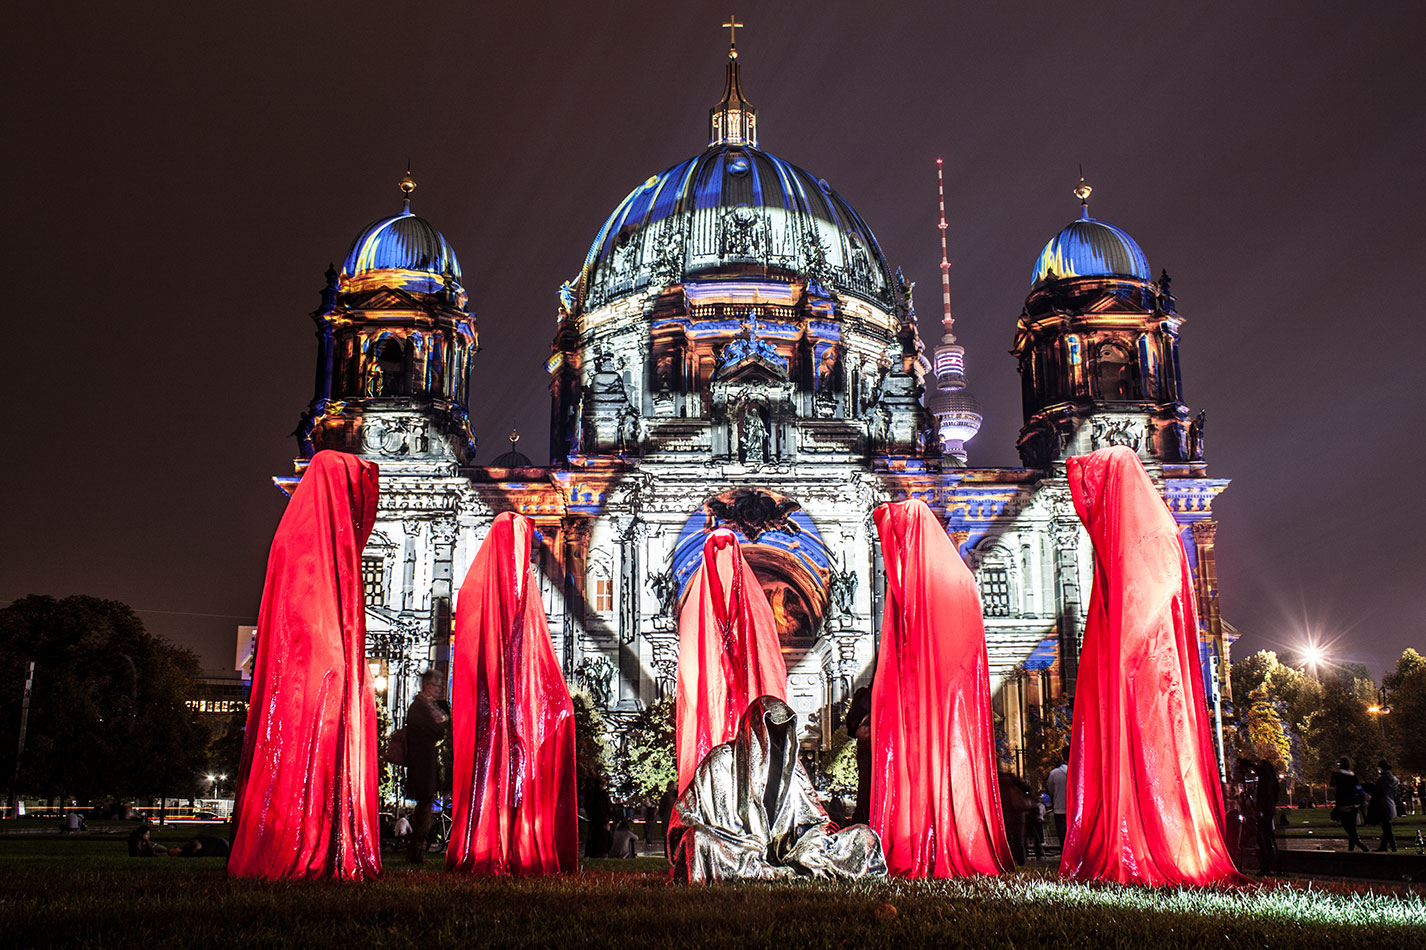 festival-of-lights-old-museum-cathedral-berlin-light-art-show-exhibition-lumina-guardians-of-time-manfred-kili-kielnhofer-contemporary-arts-design-sculpture-3060